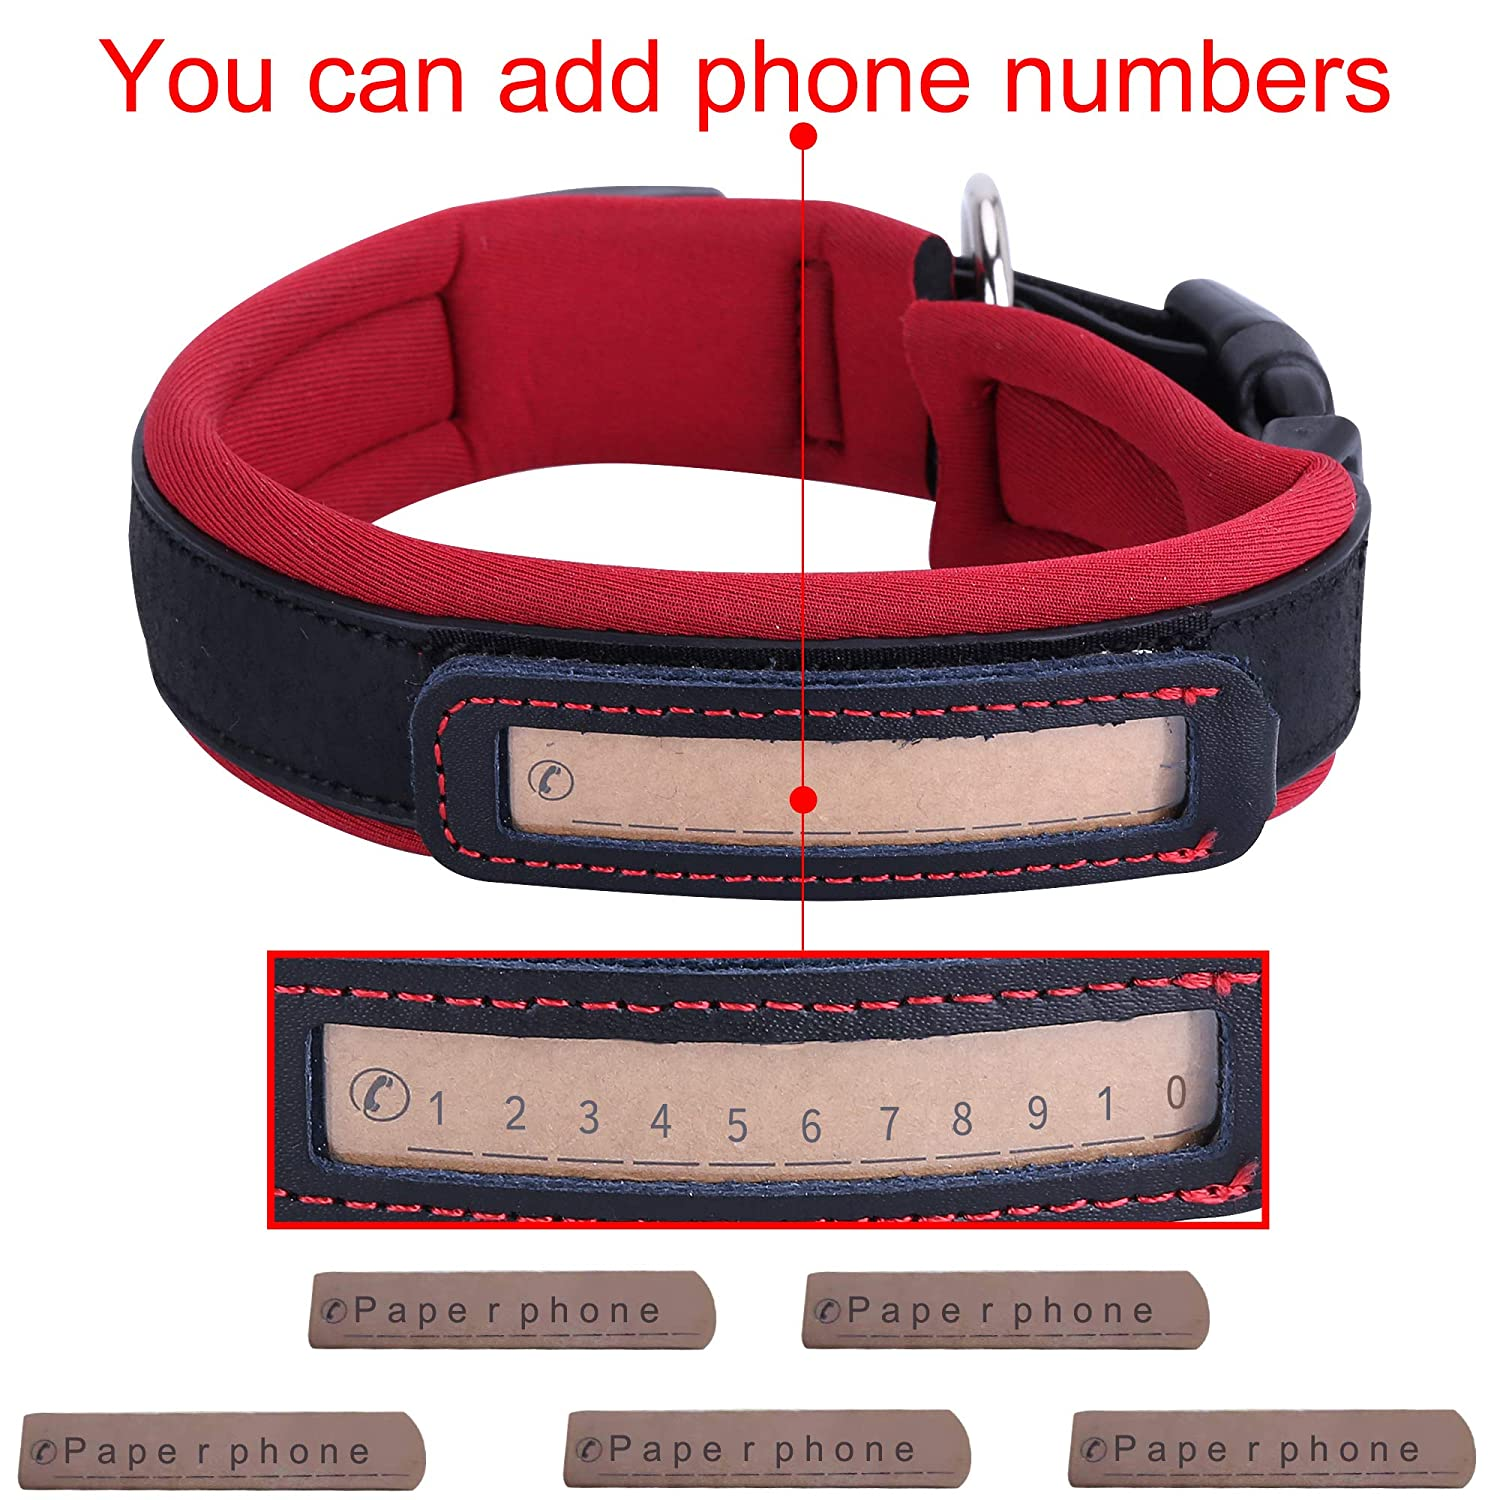 Dog Collars IDOOLS Personalized Genuine Leather Ultra Soft Neoprene Padded with Custom Phone Number Engraved Plate Pet Collar for Small Medium Large Dogs Reflective Adjustable-Medium